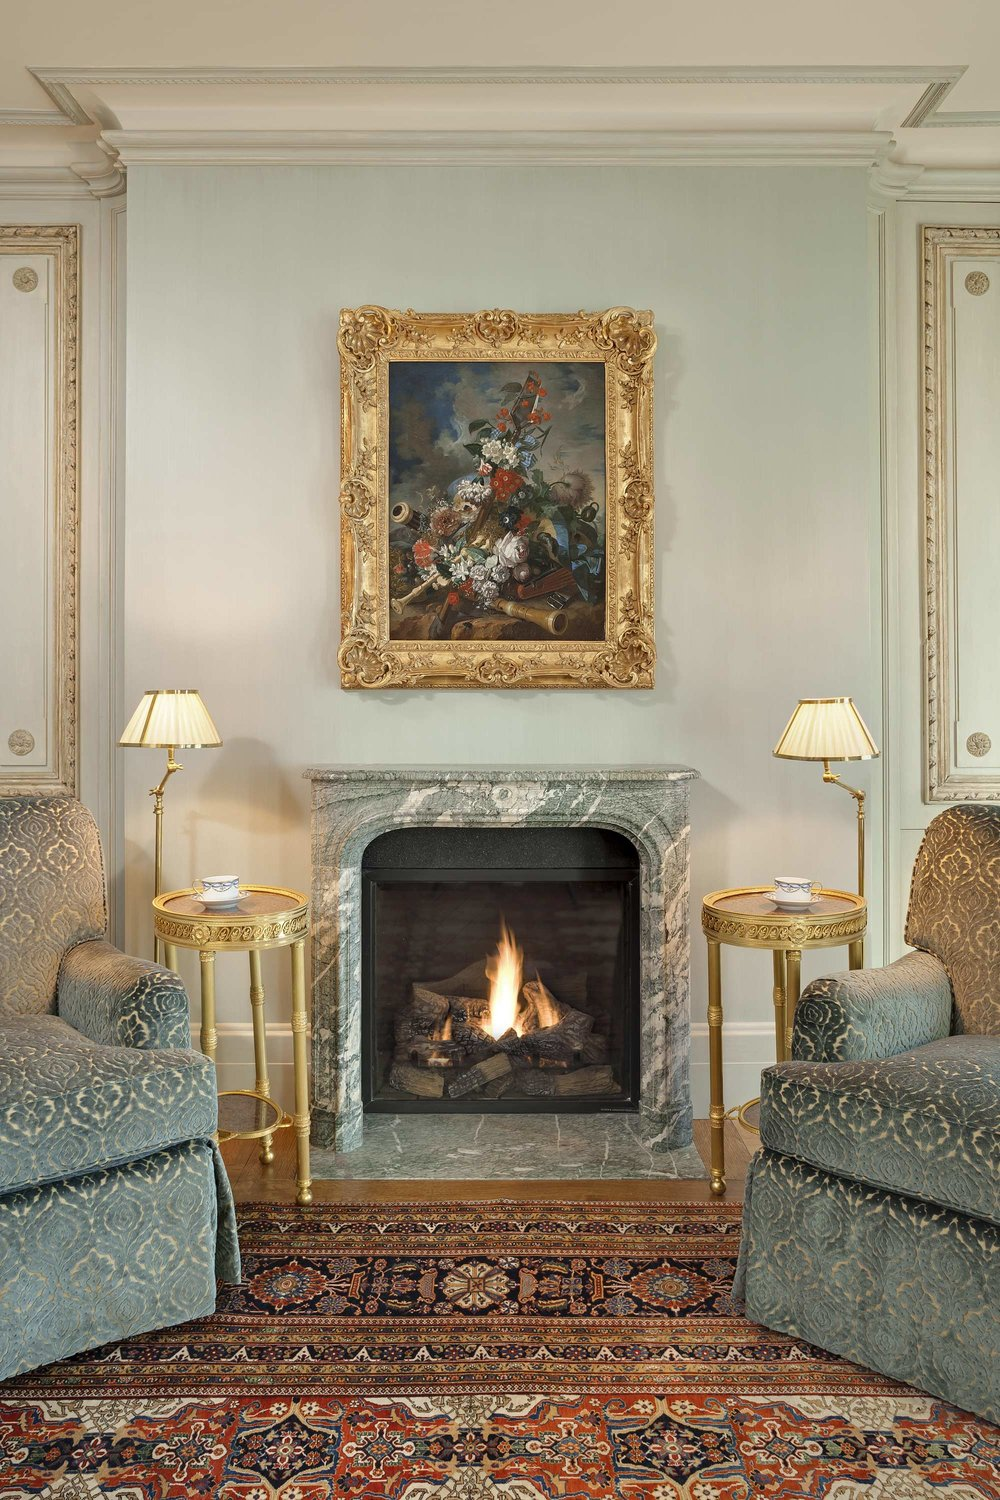 Comfortable Chairs And Warm Fireplace Funeral Home Design